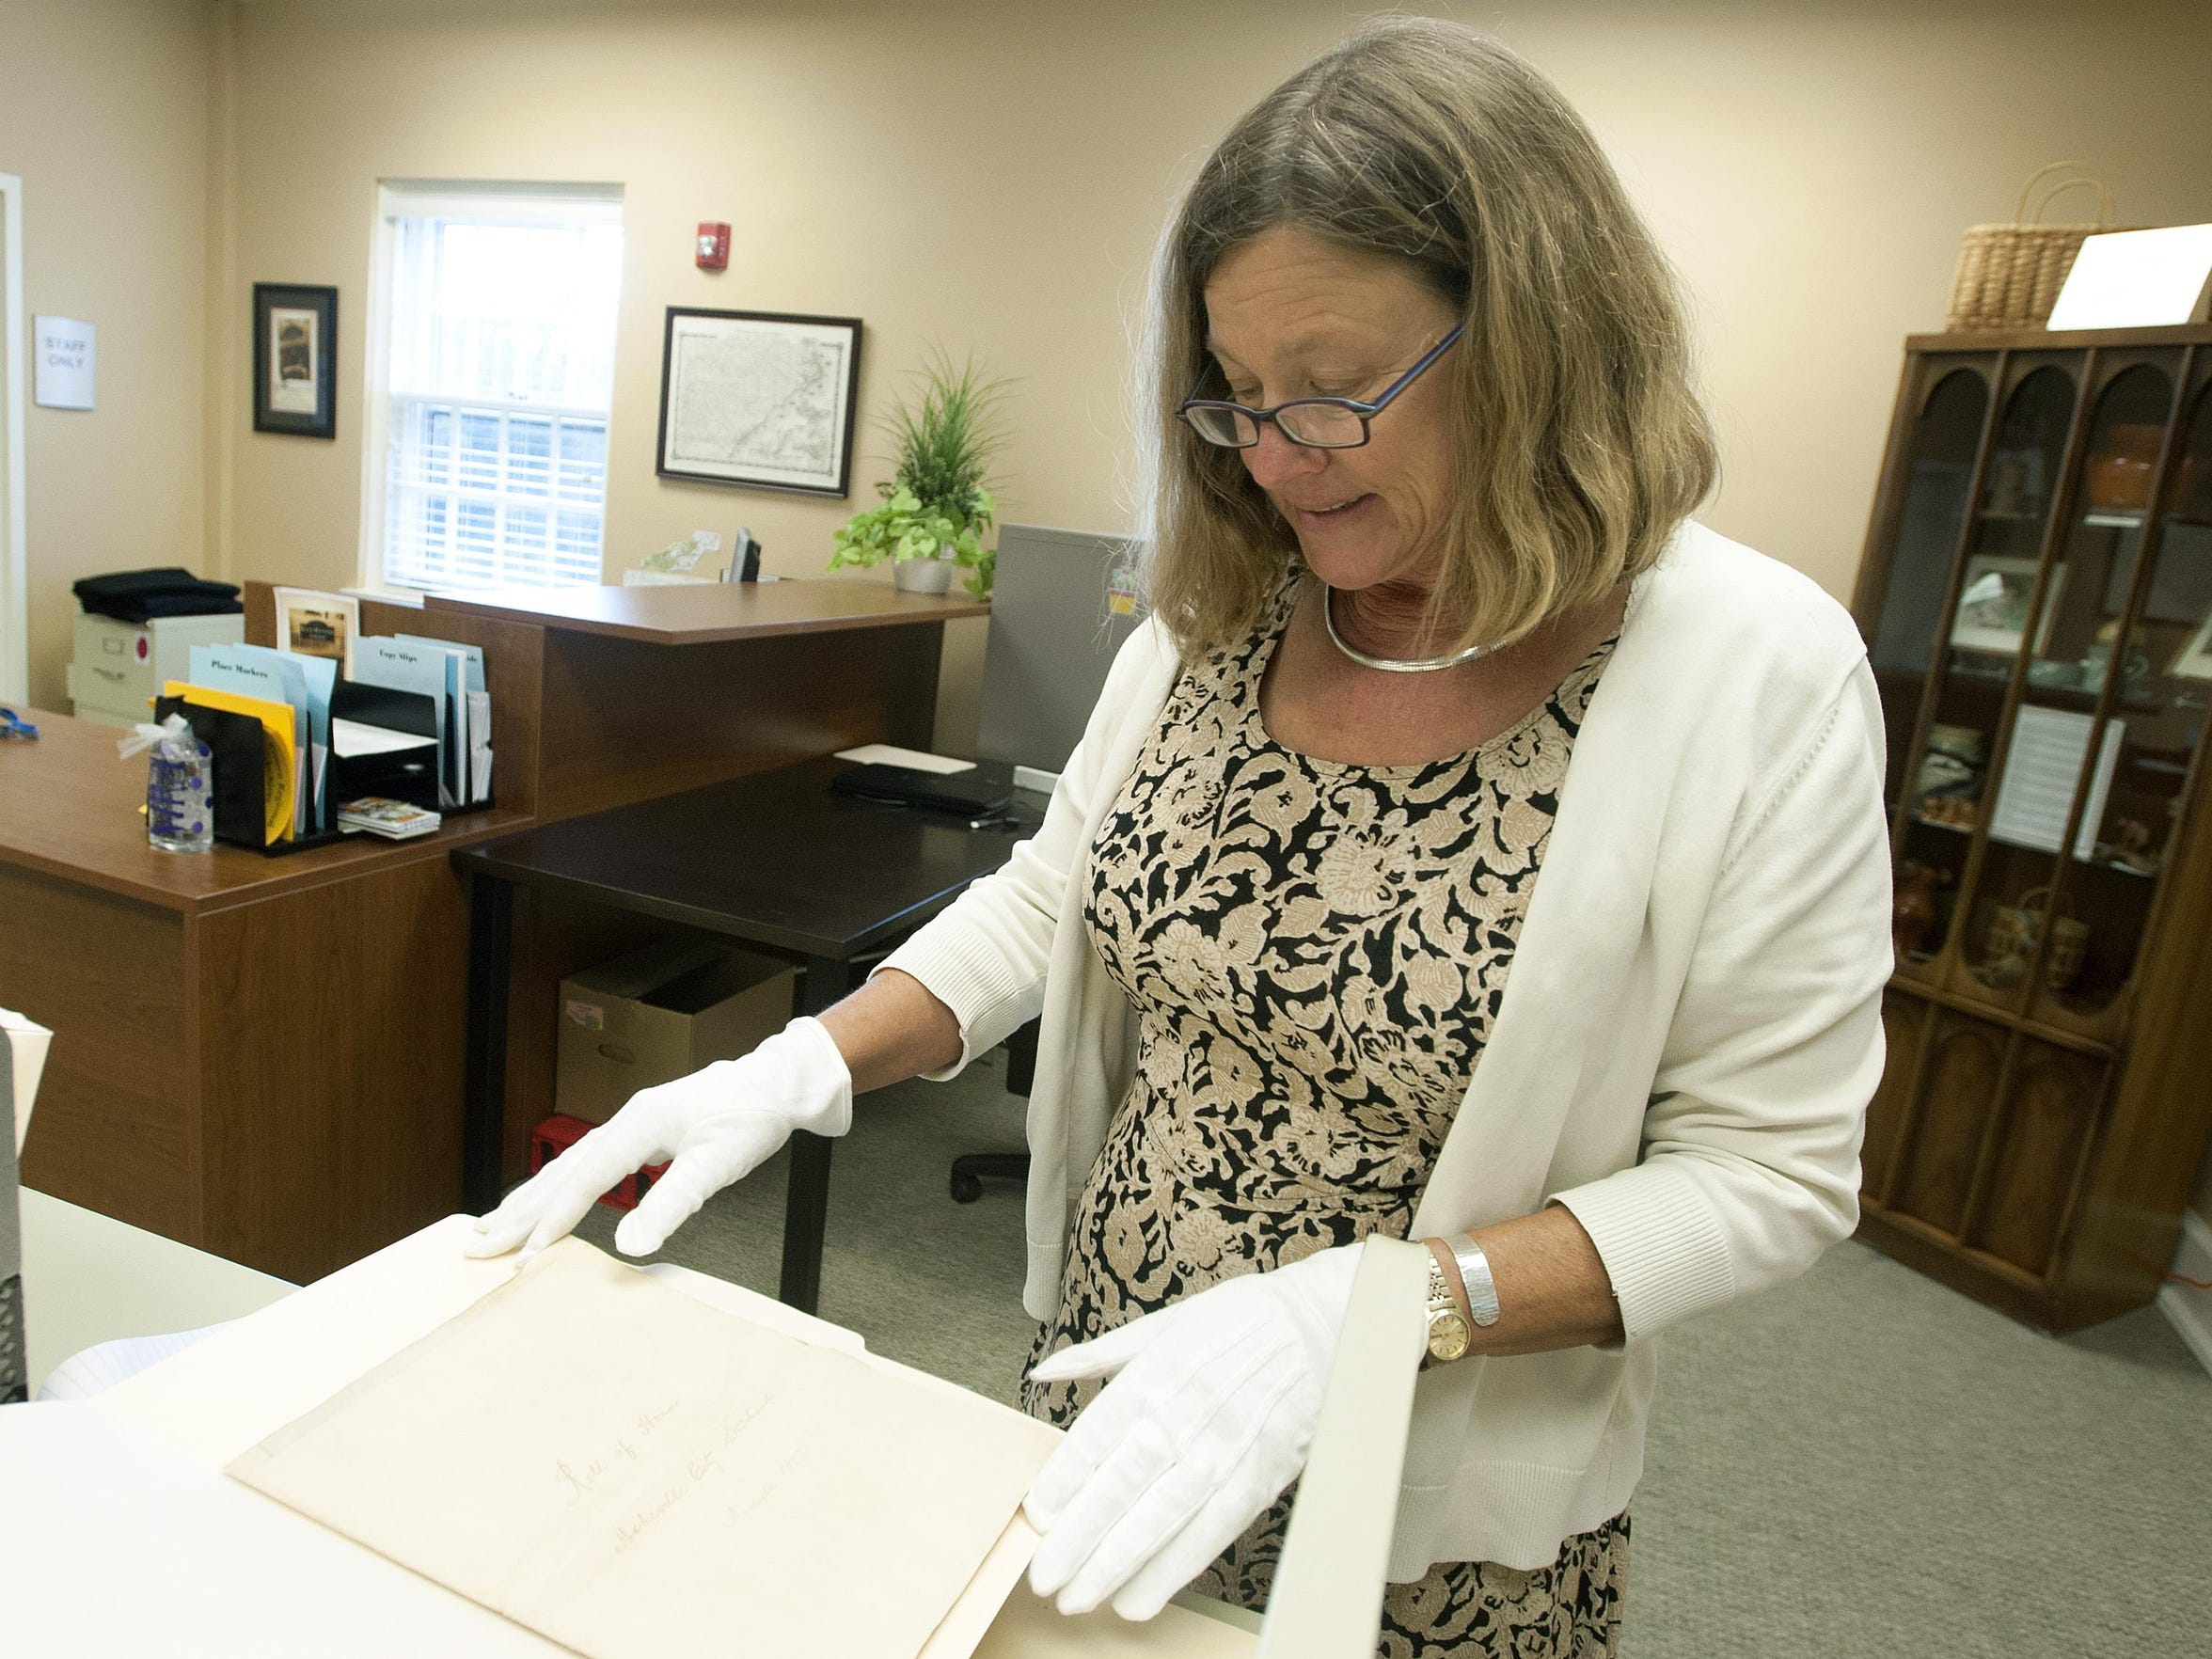 Sarah Downing, with the Western Regional Archives at